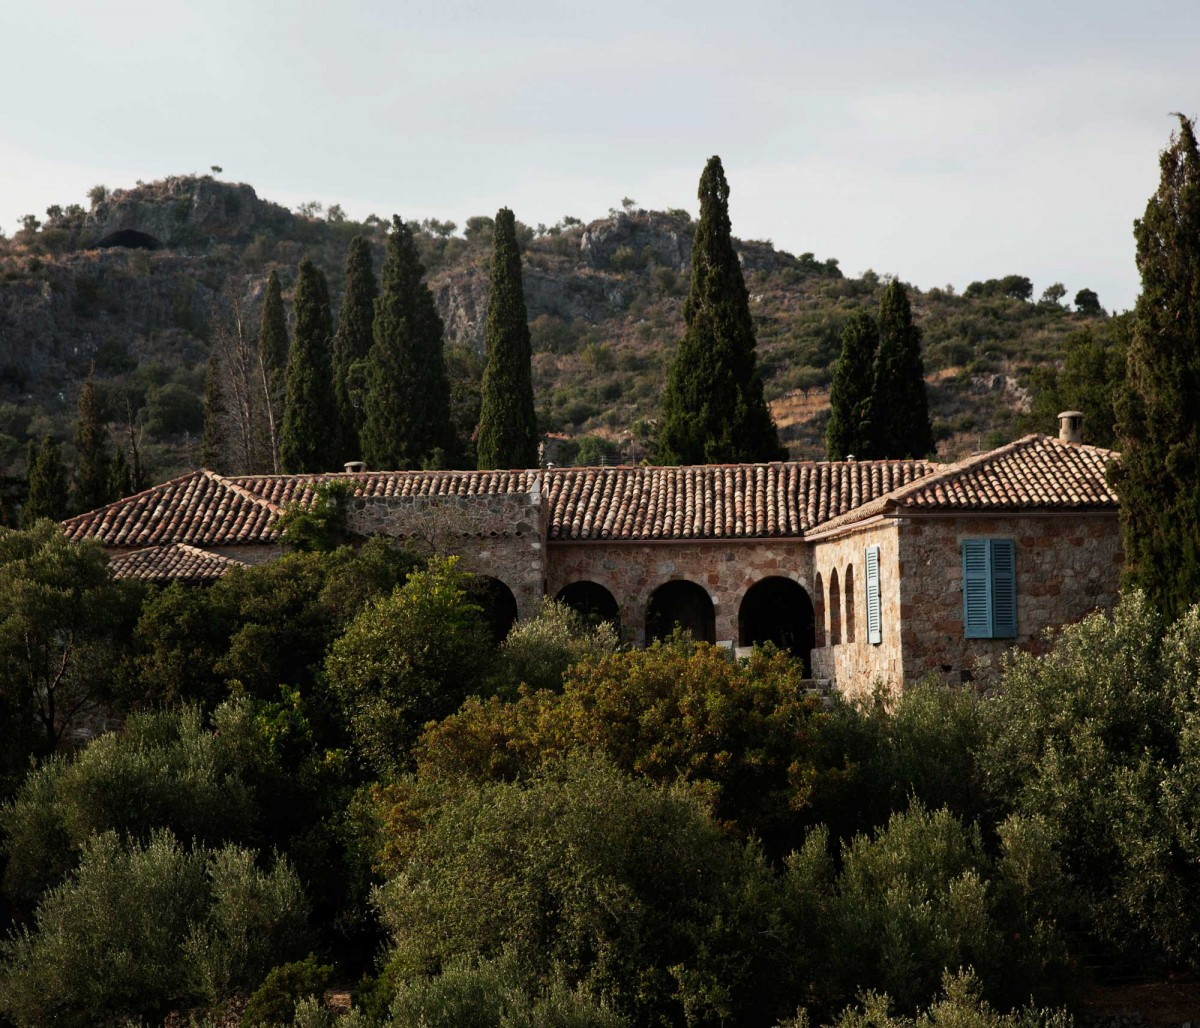 The House of Patrick and Joan Leigh Fermor. Photo by Kamilo Nollas.